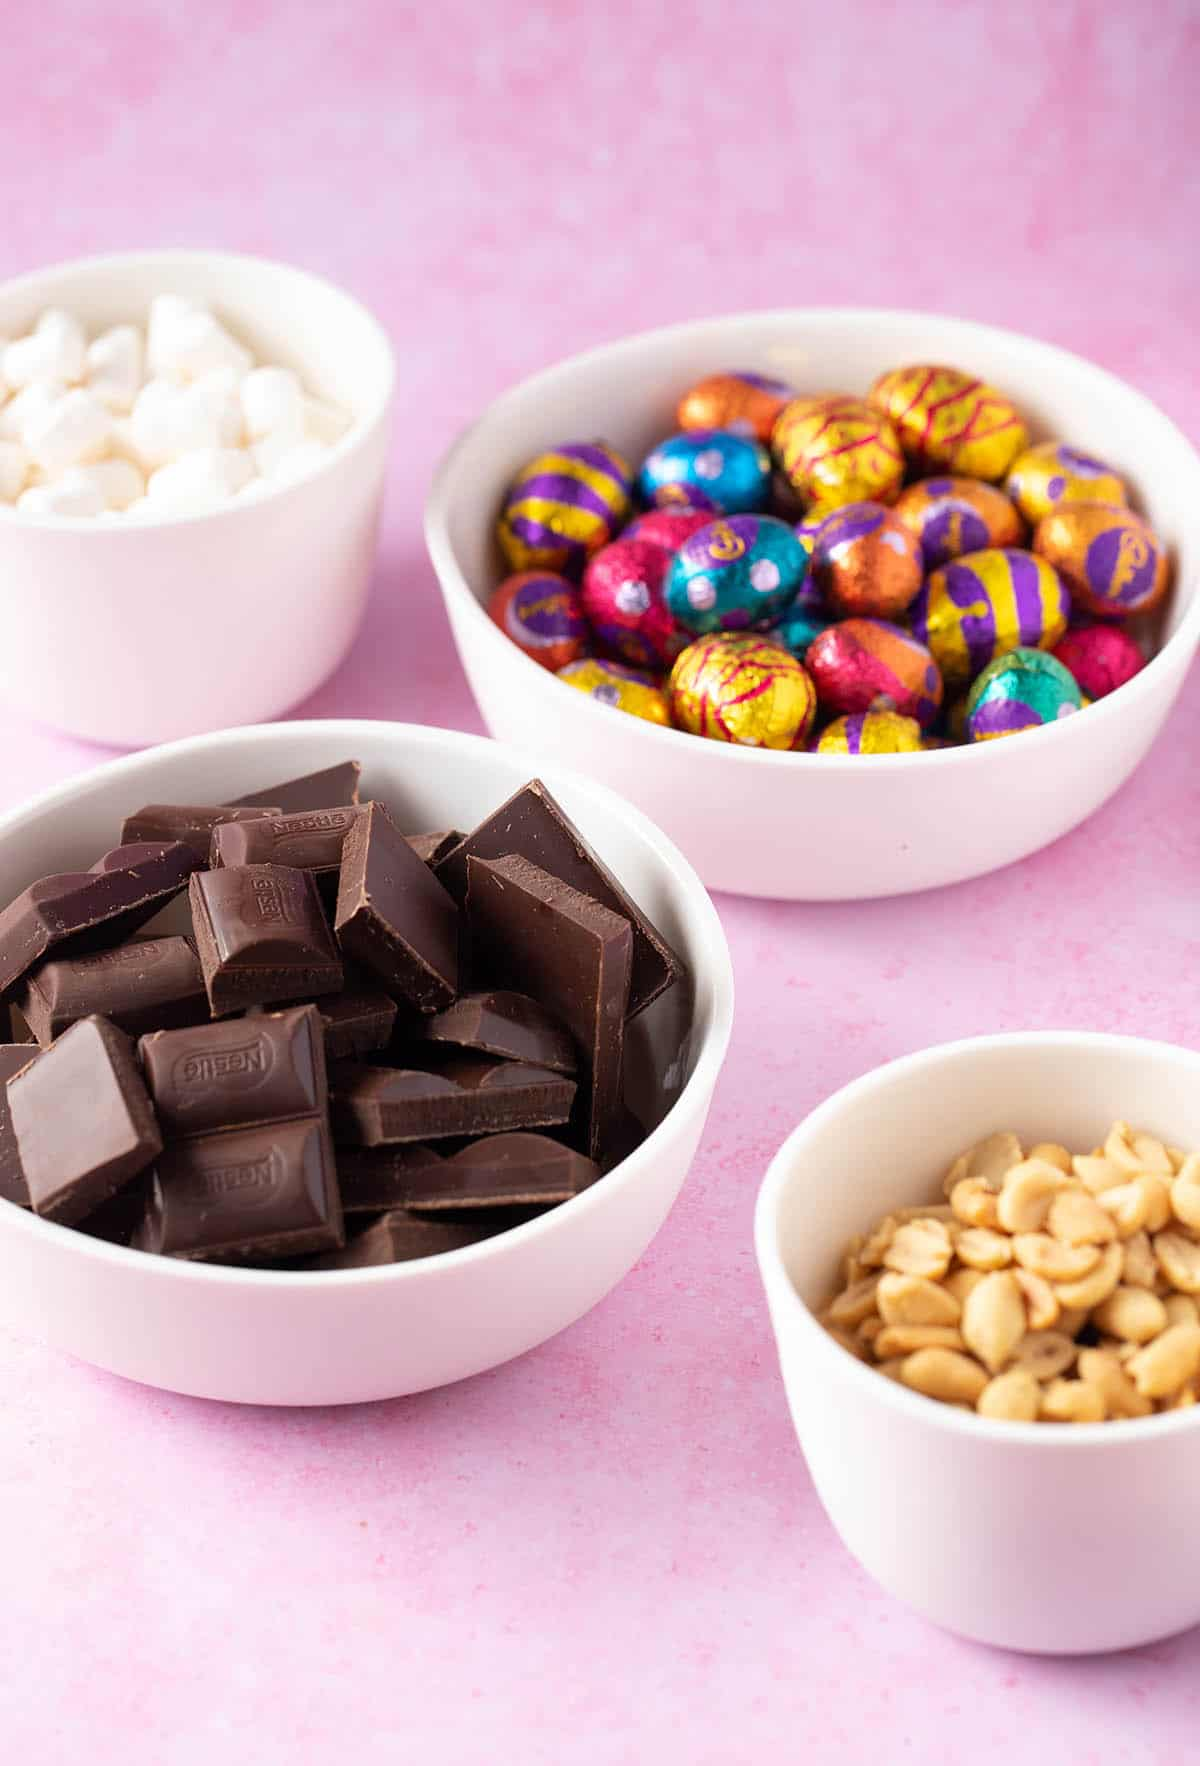 Bowls filled with chocolate, peanuts, mini marshmallows and Easter eggs